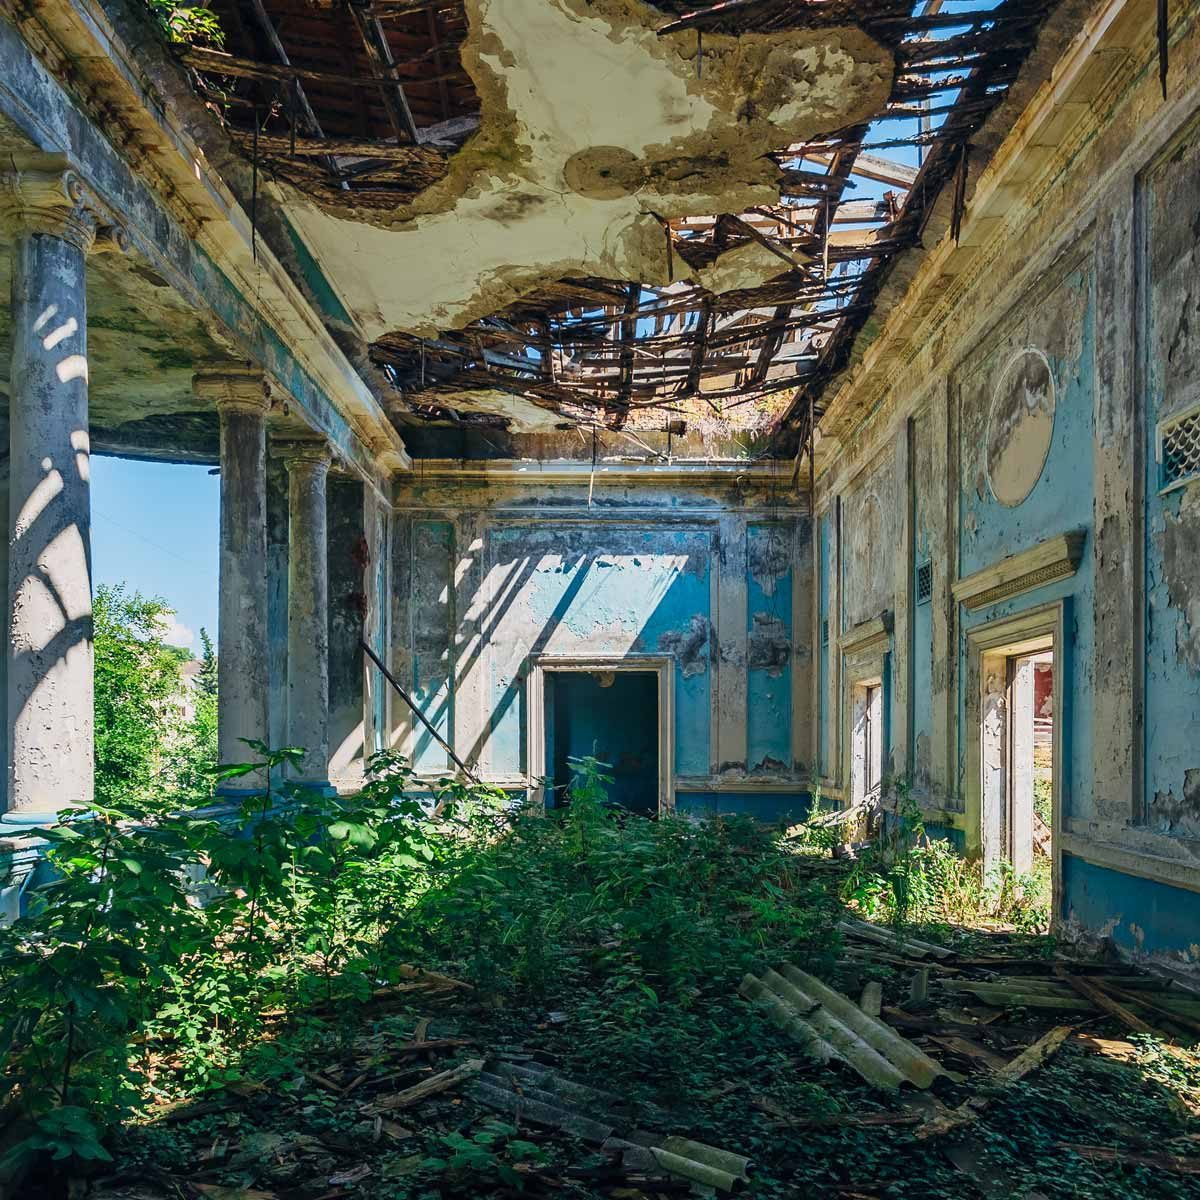 Ruined-abandoned-mansion-overgrown-with-weeds